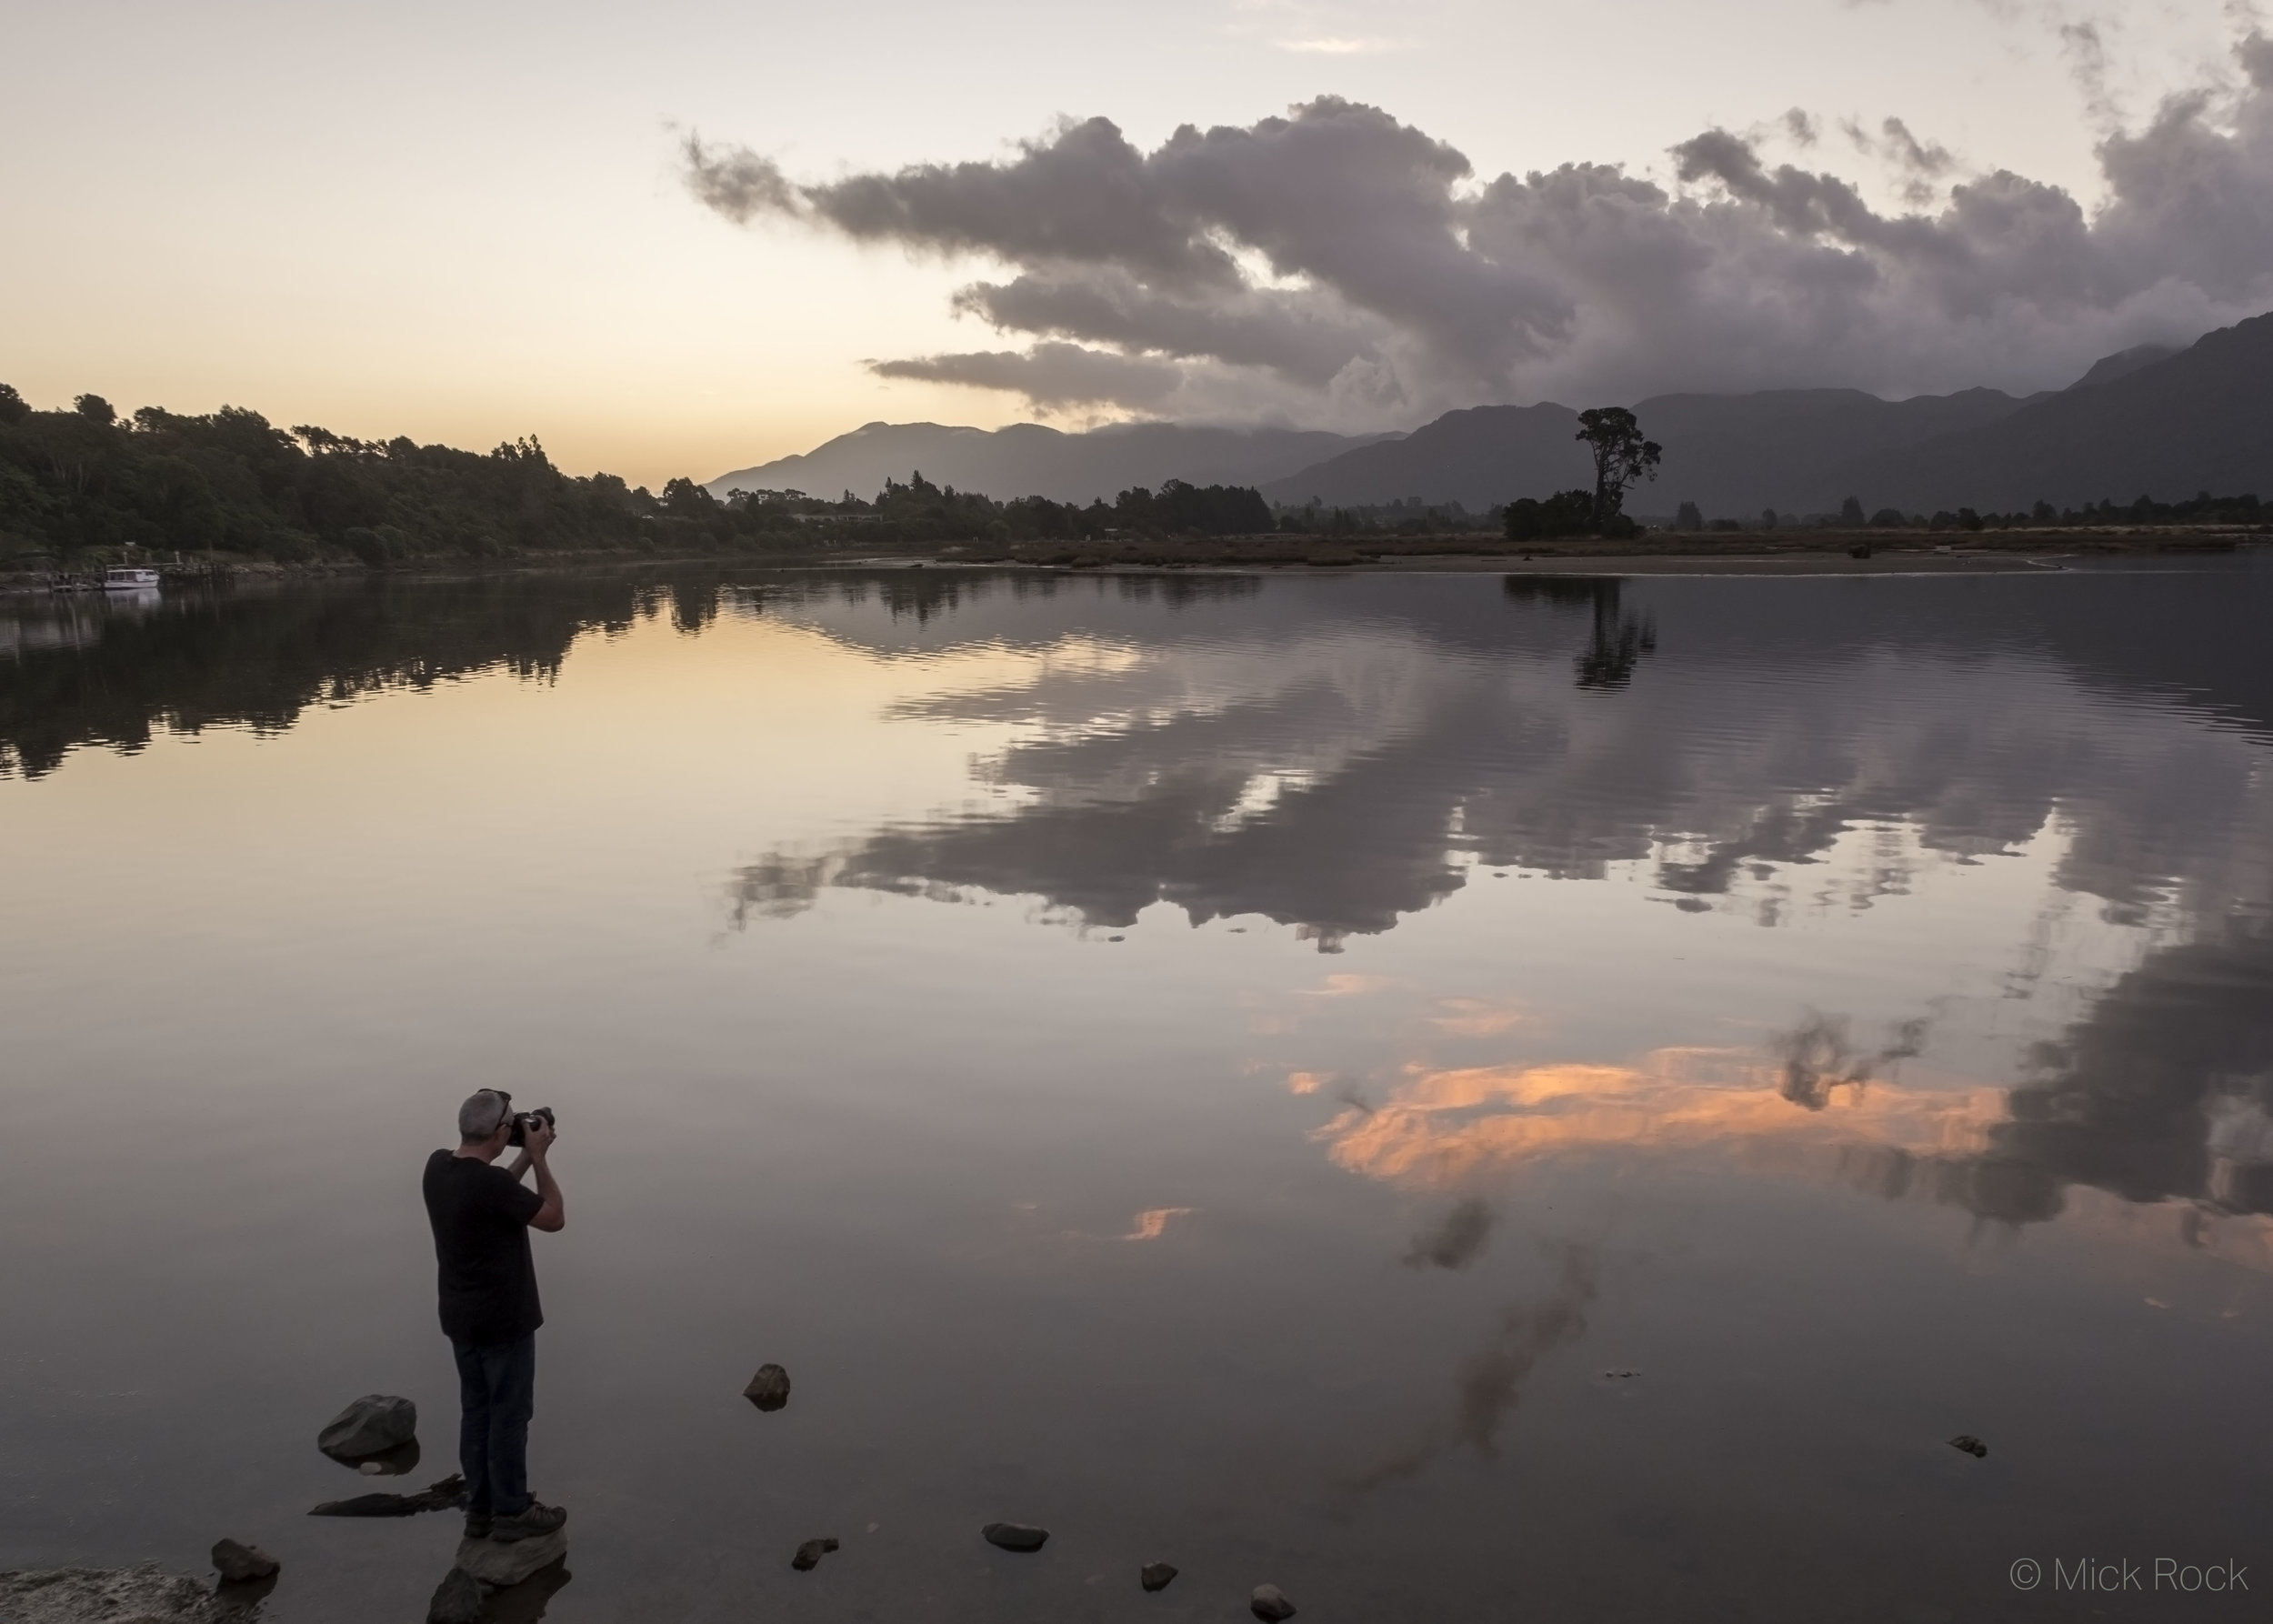 Sunset over the Aorere River Mouth with the Burnett Range in the distance, Collingwood, Golden Bay - image Mick Rock